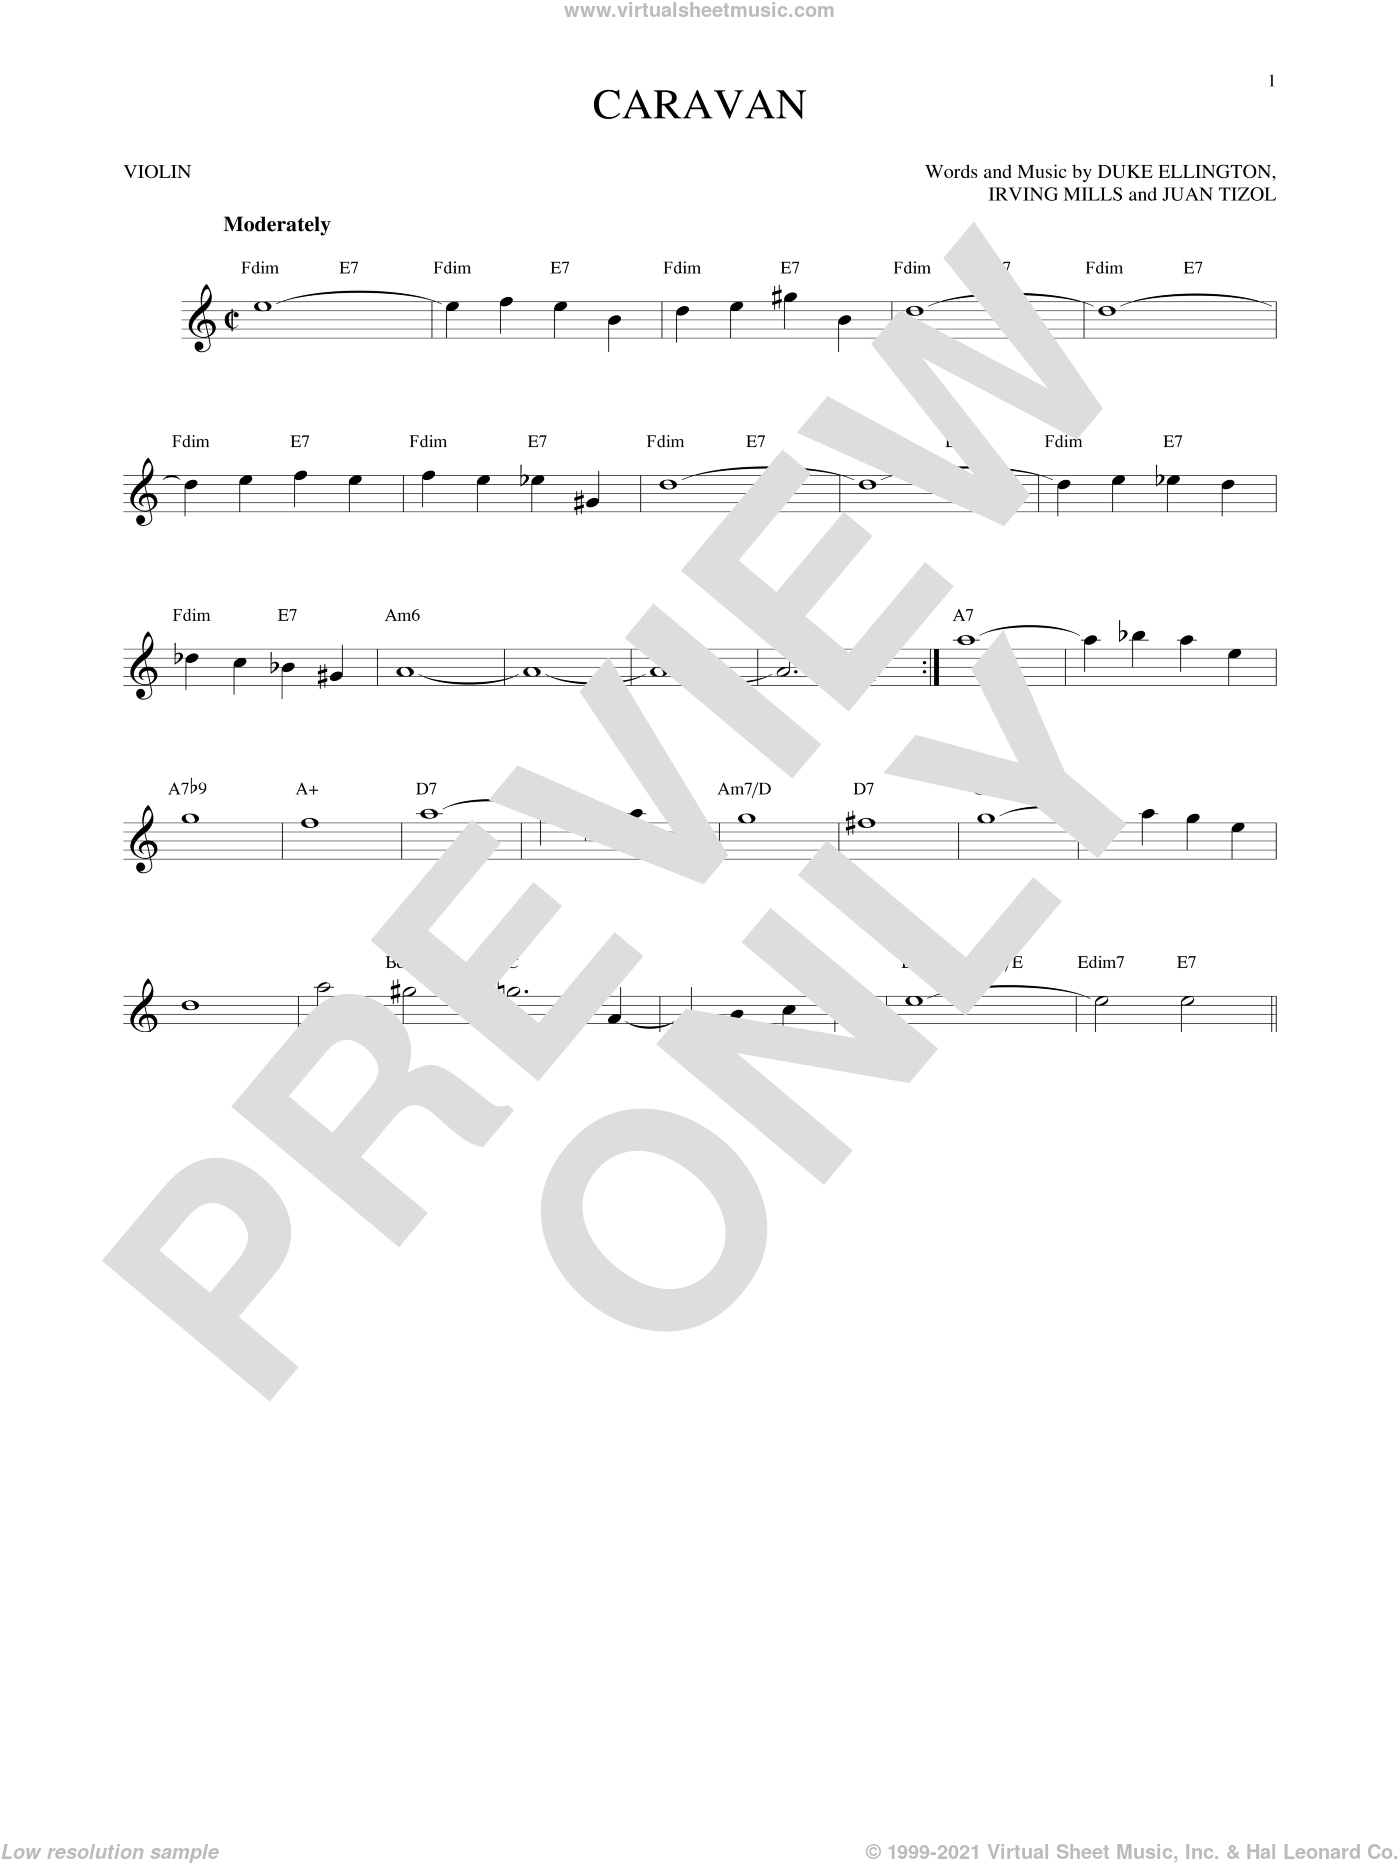 Caravan sheet music for violin solo by Duke Ellington, Billy Eckstine, Duke Ellington and his Orchestra, Ralph Marterie, Irving Mills, Juan Tizol and Juan Tizol & Duke Ellington, intermediate skill level